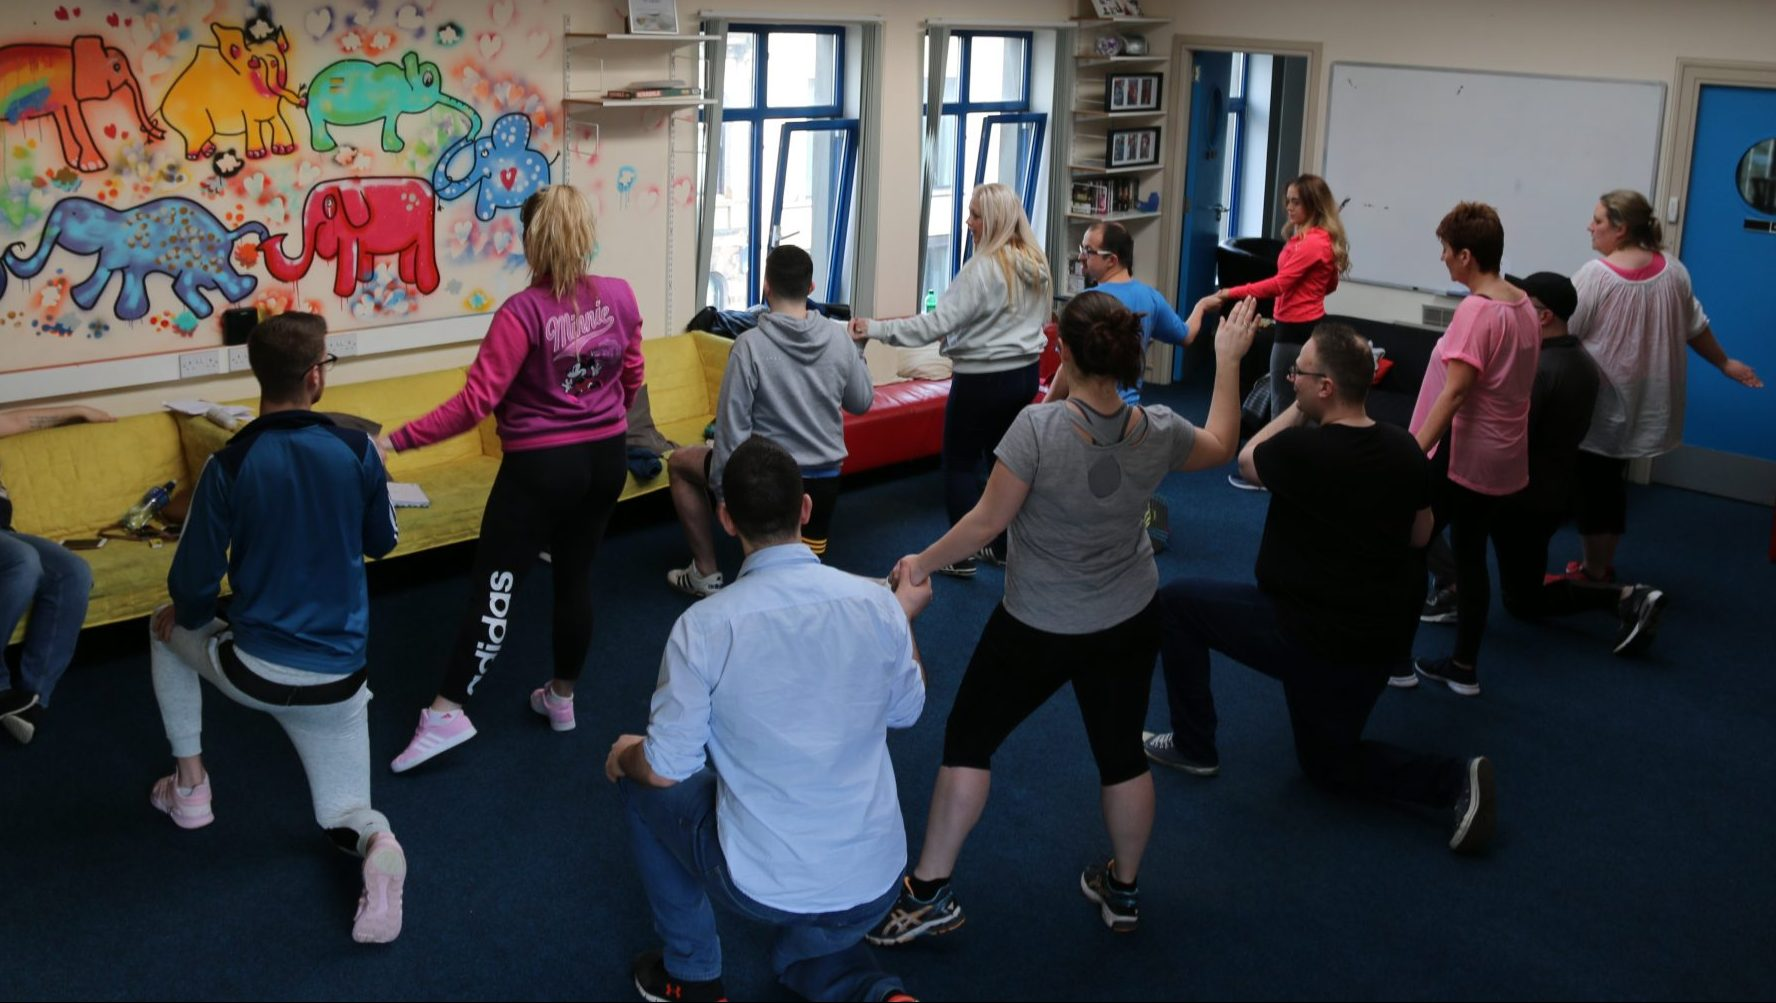 Volunteers rehearsing their steps ahead of the big show to raise funds for The Rainbow Project.